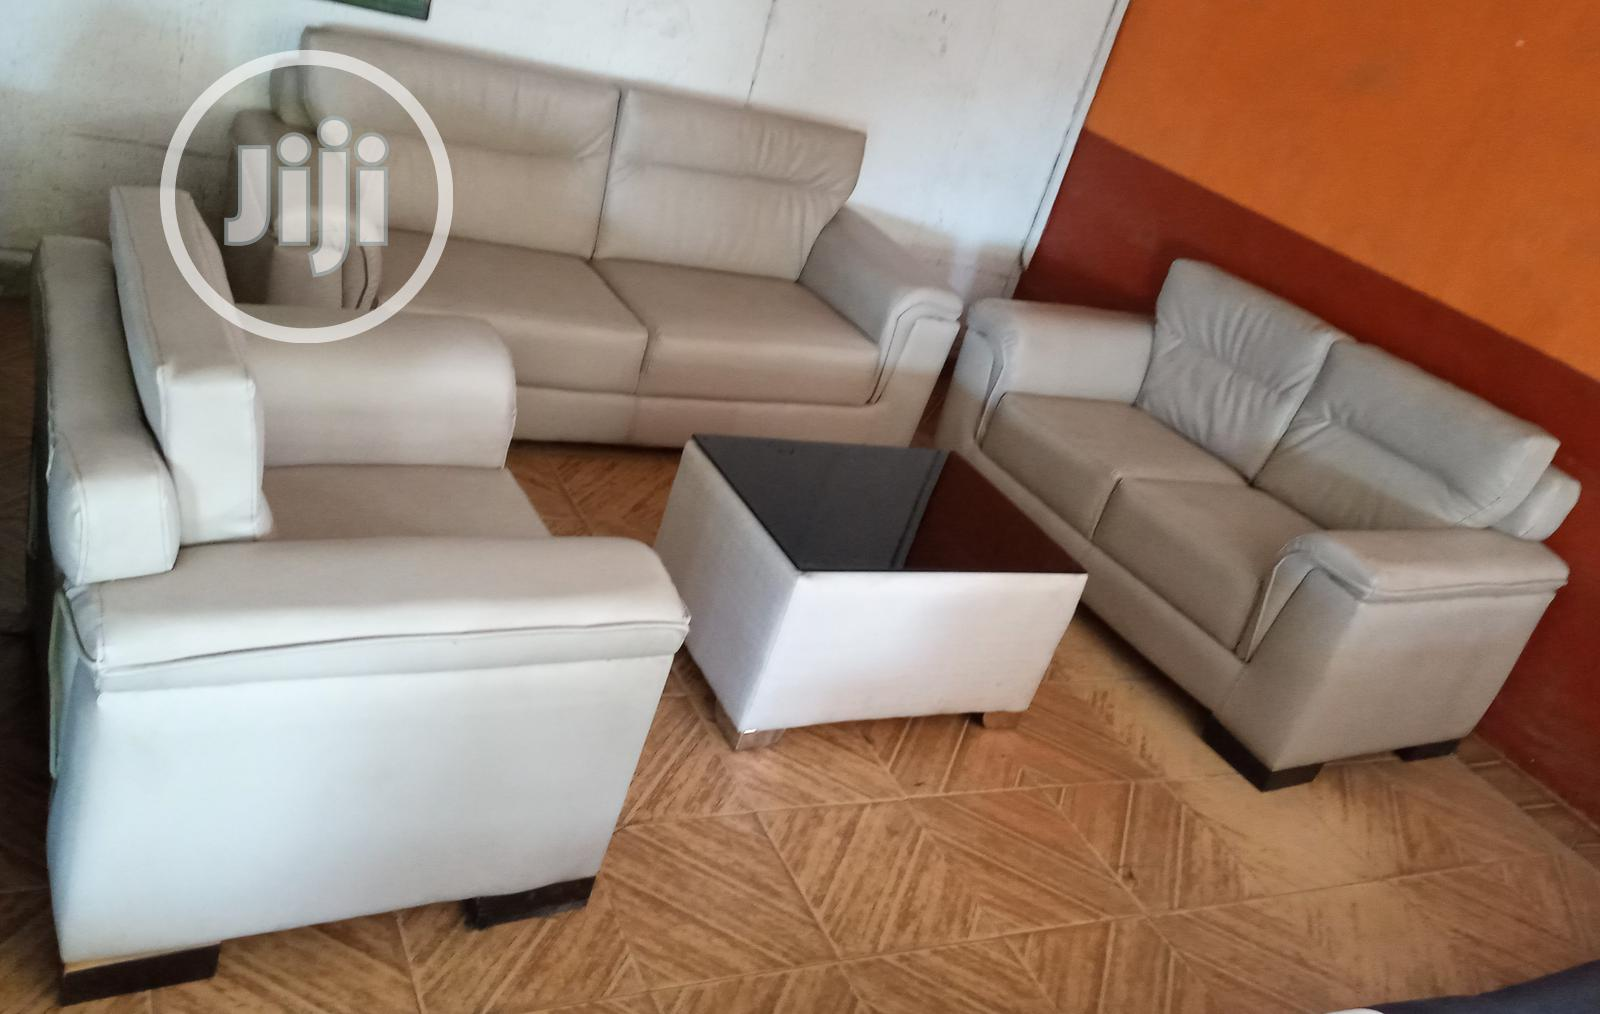 Classic Sofa Chairs With Table. 6 Seaters Leather Couch